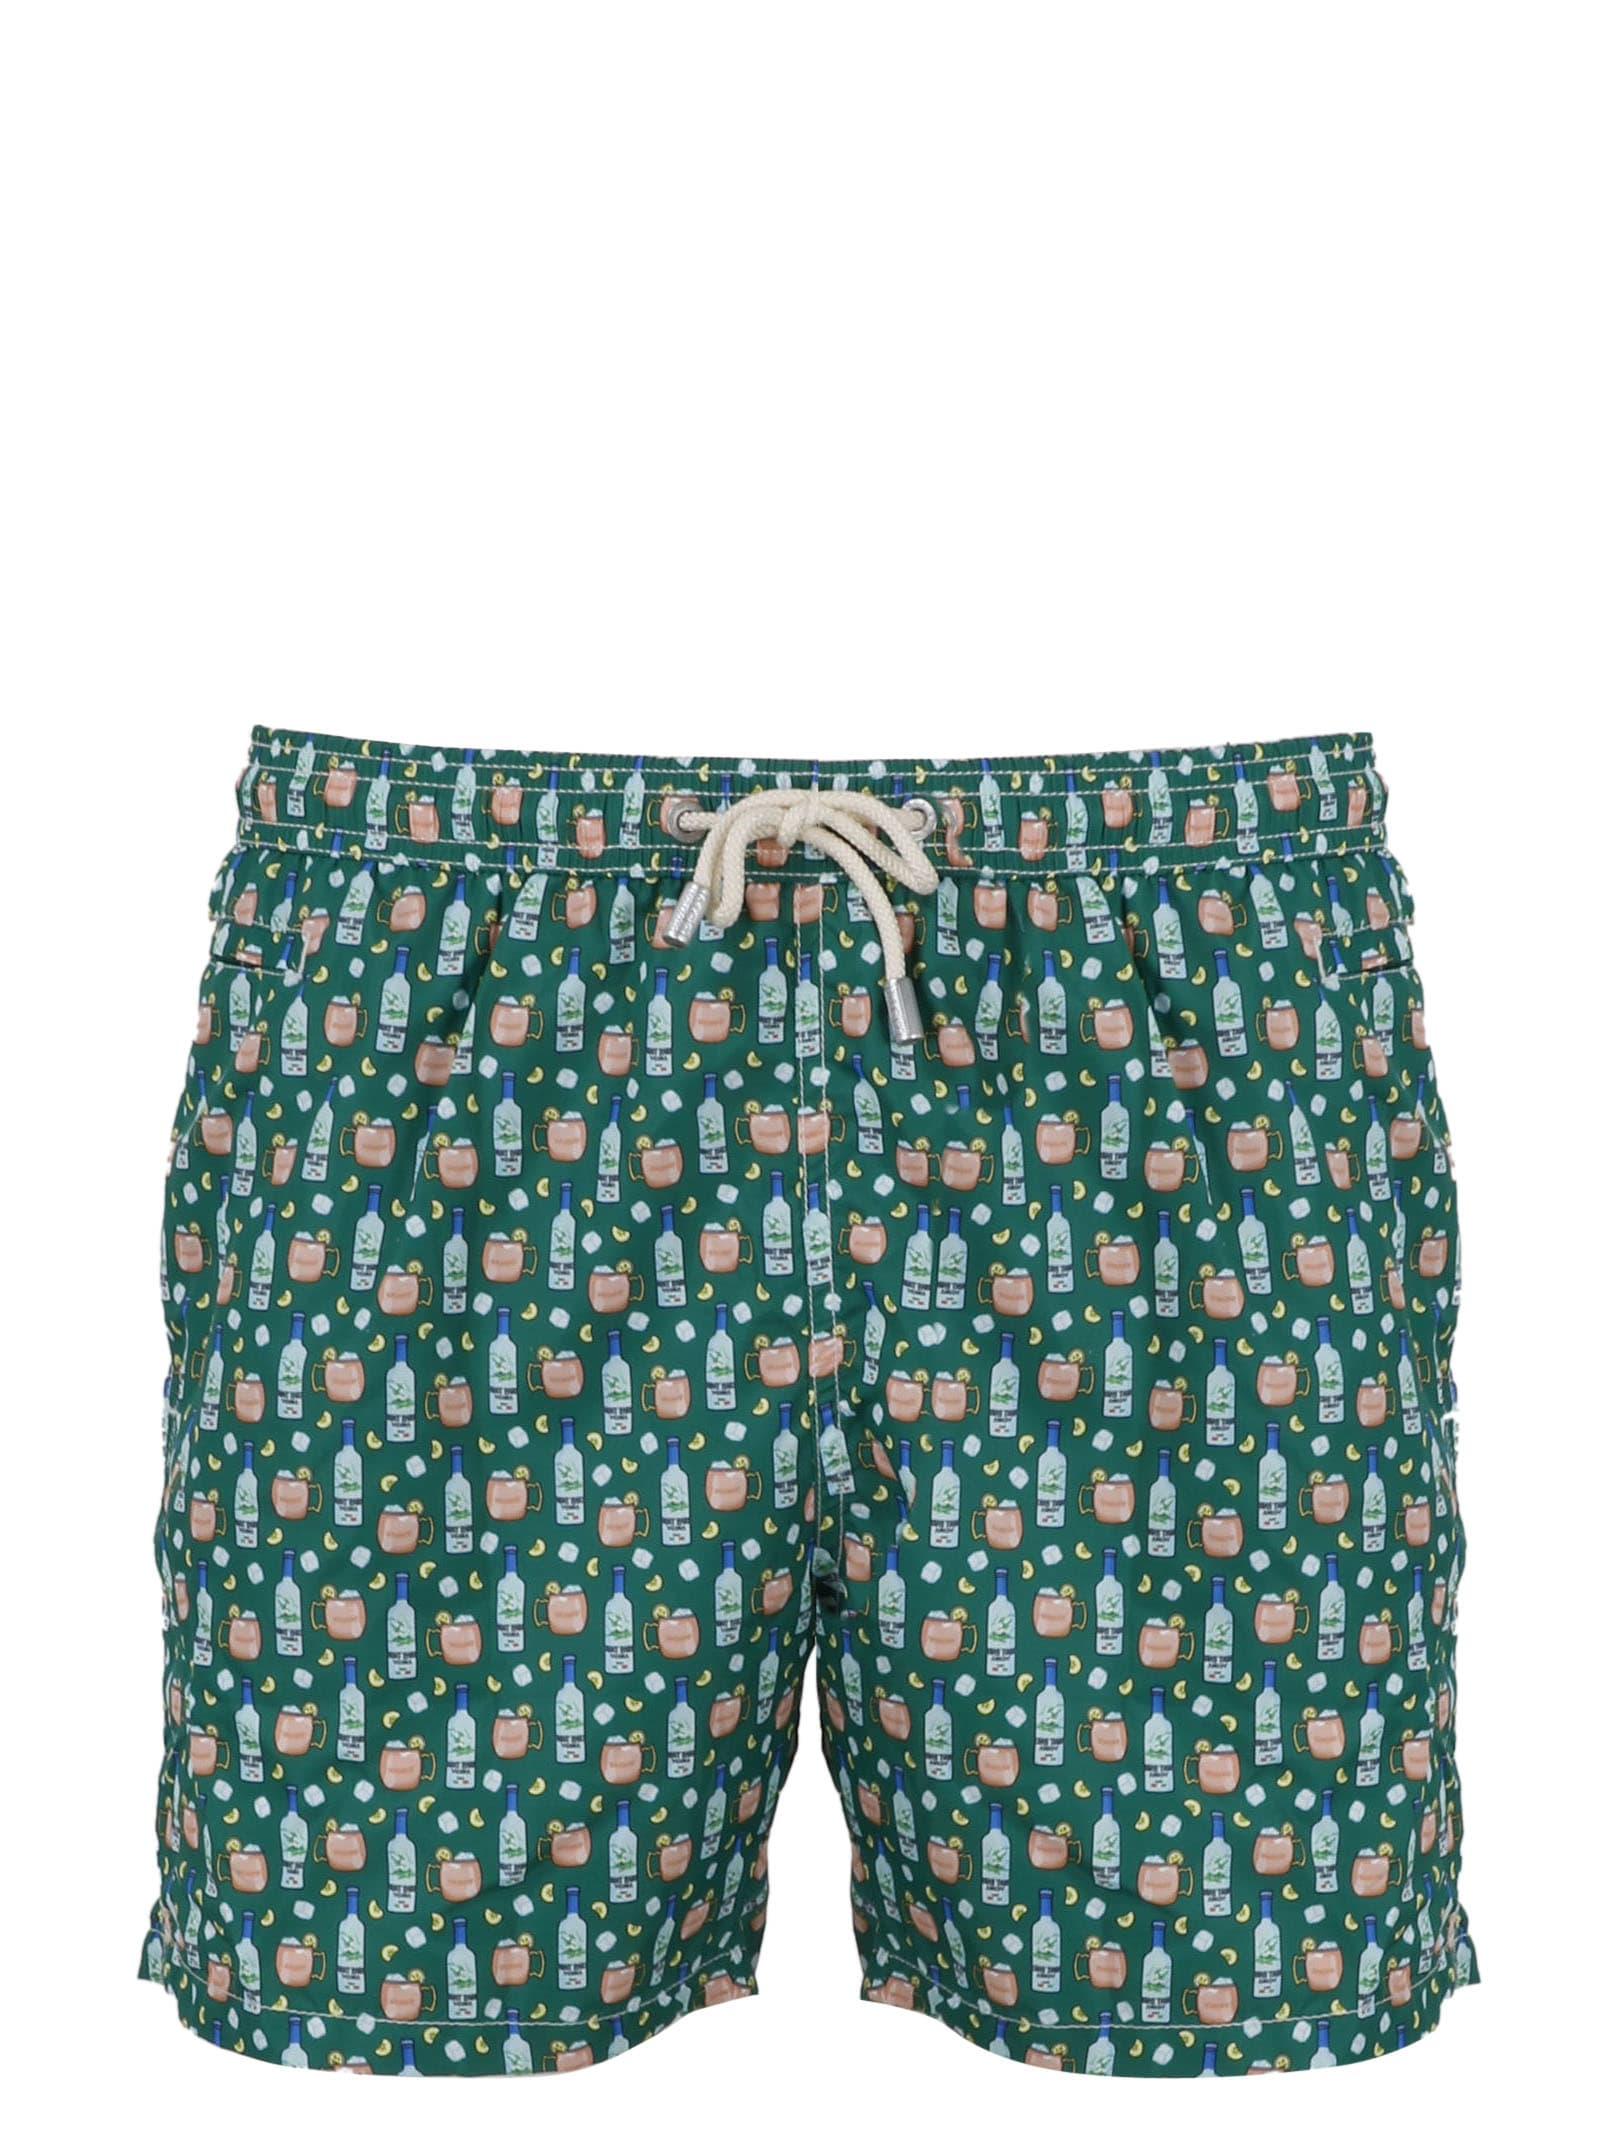 MC2 Saint Barth Microfantasy Print Swimshorts